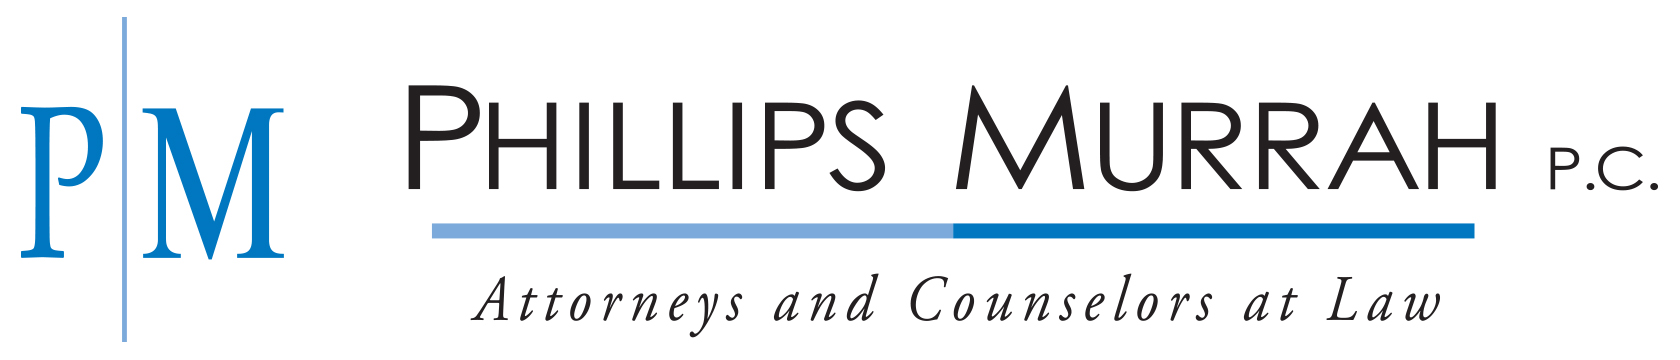 PHILLIPS MURRAH P.C. Company Logo